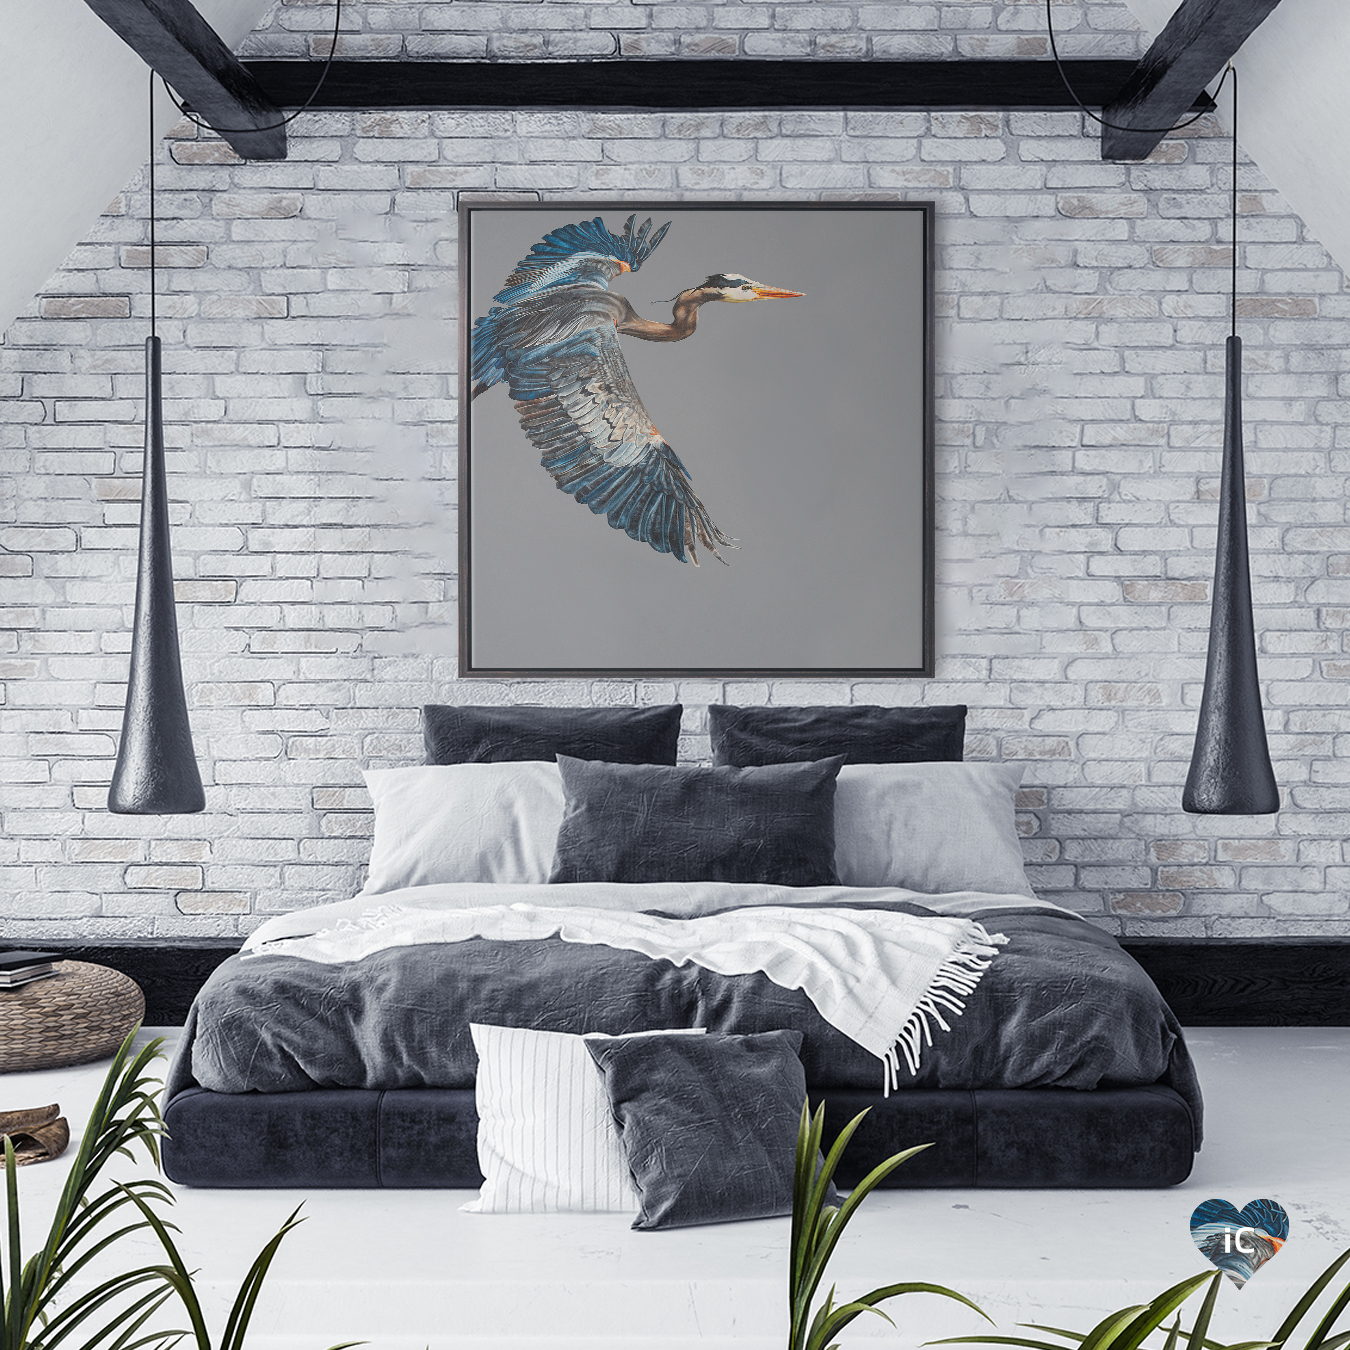 a large blue heron flying into the frame against a stark gray background